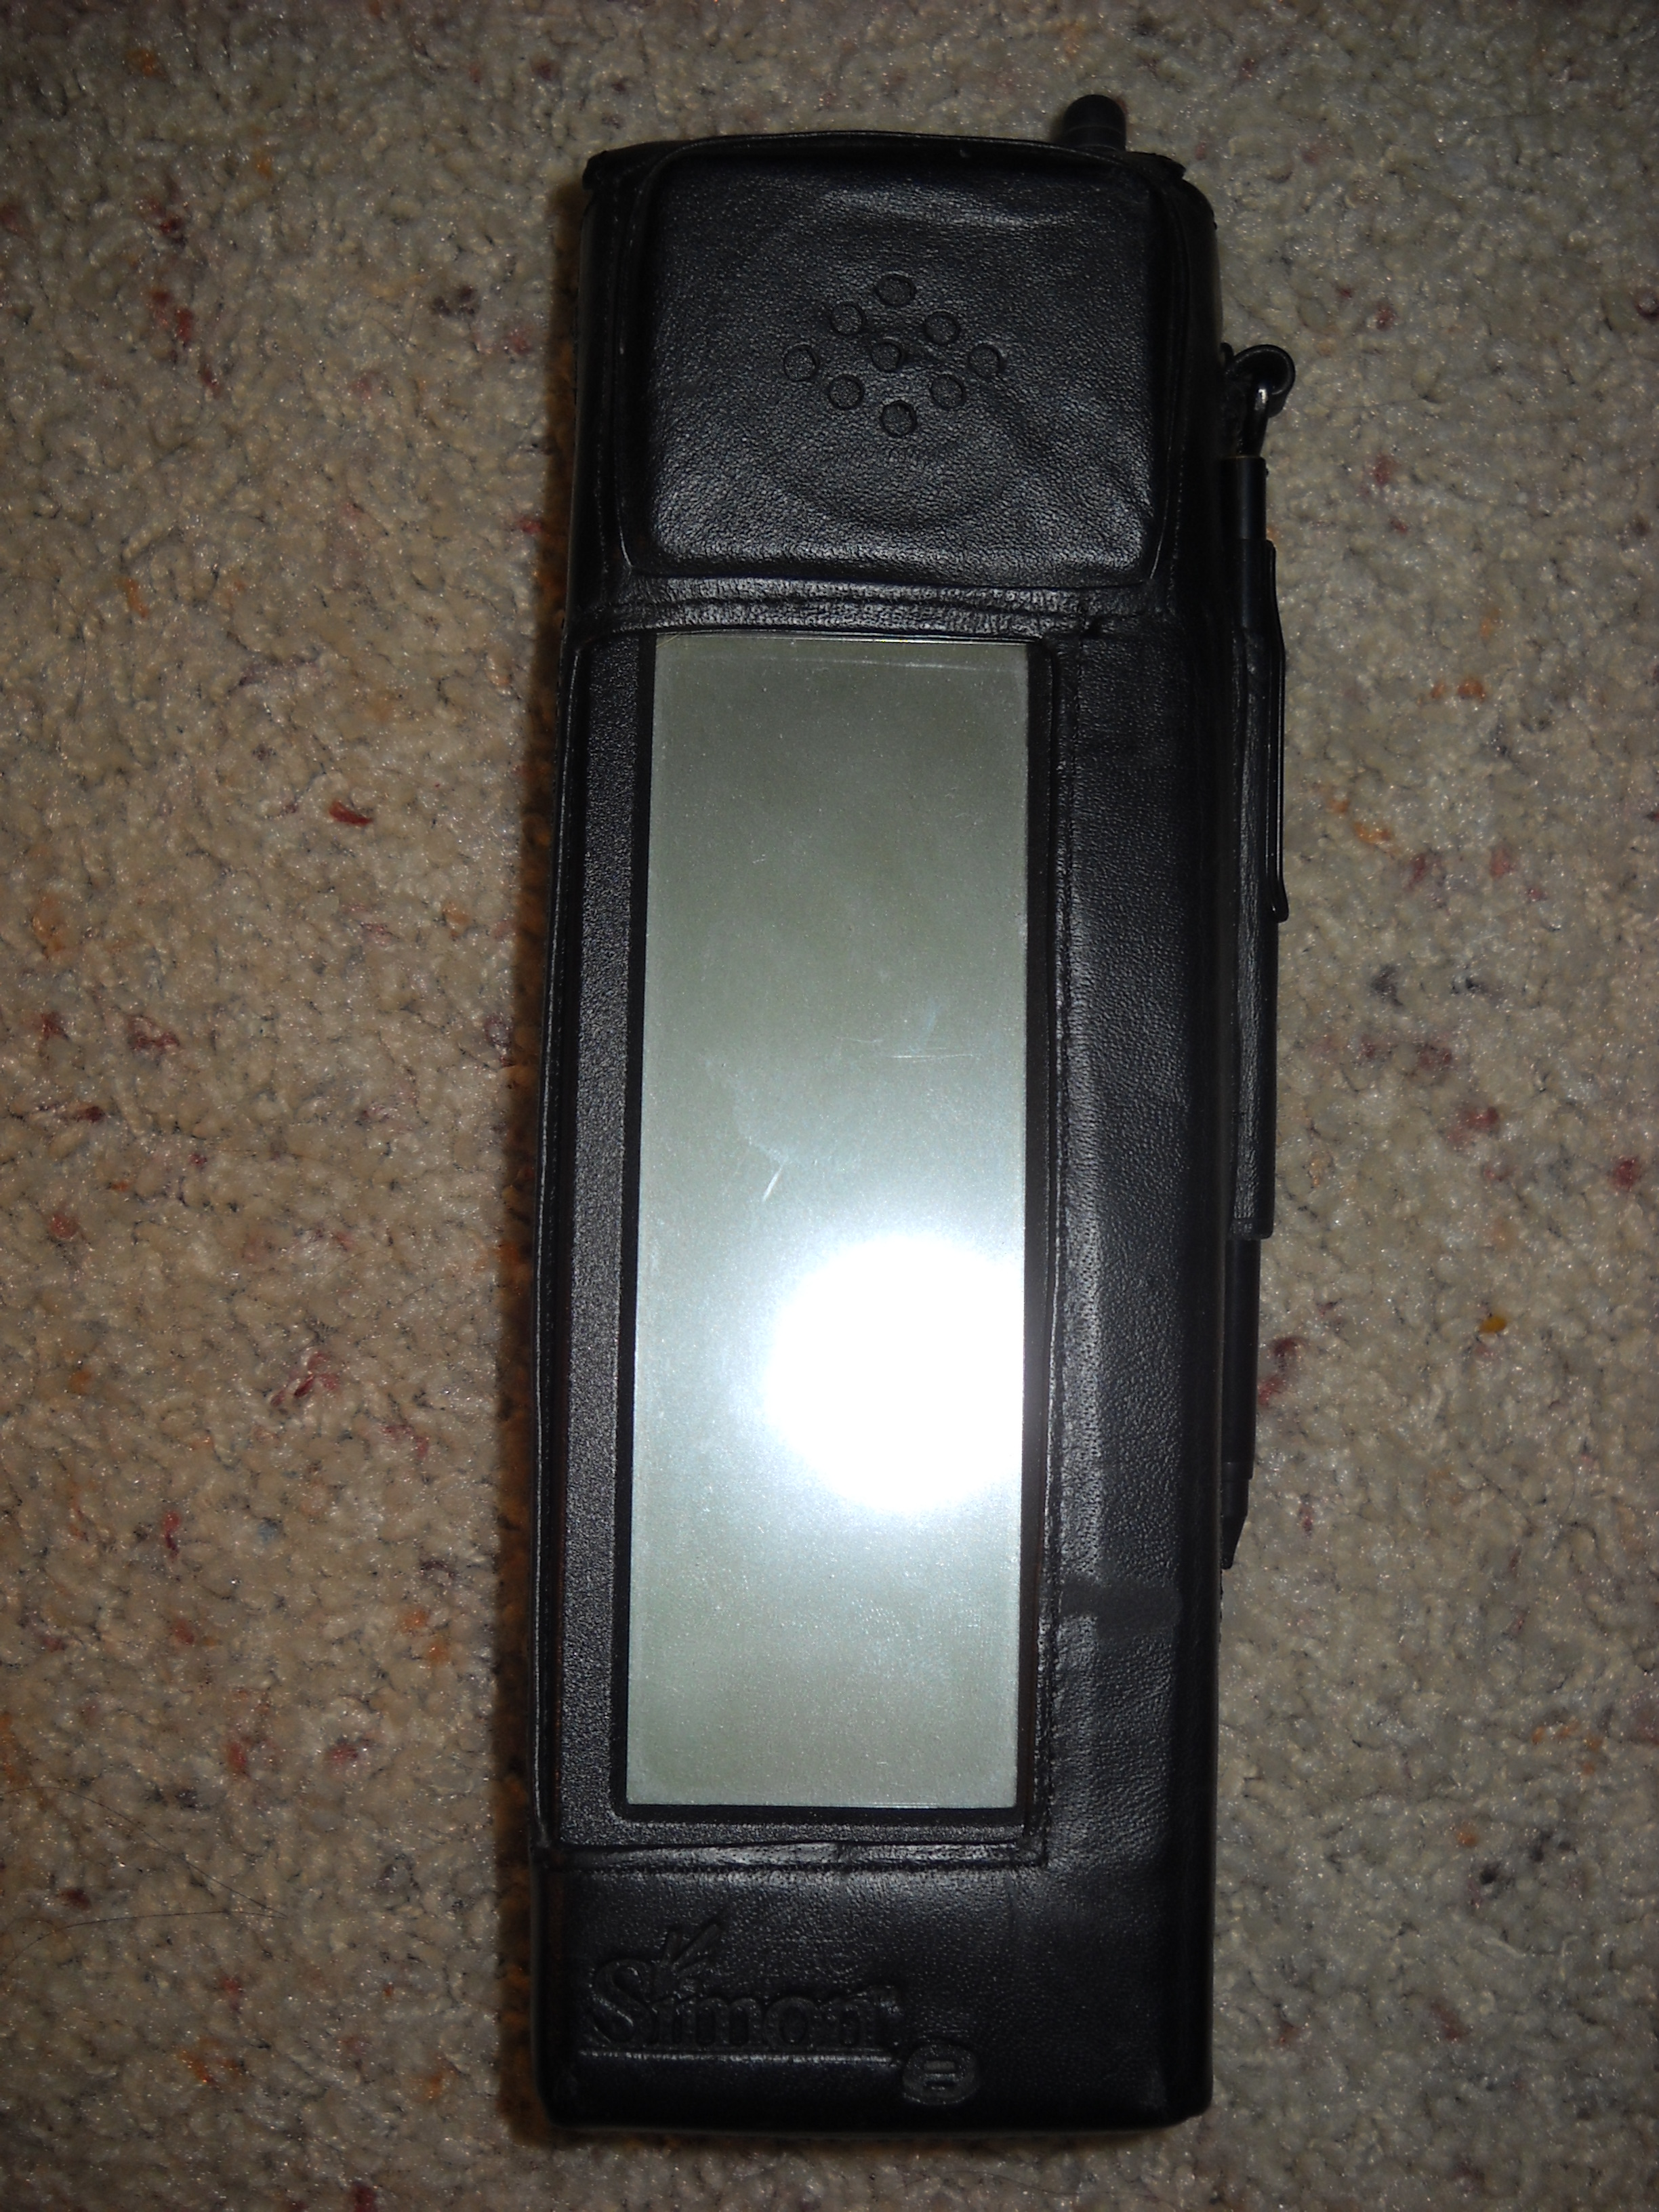 https://upload.wikimedia.org/wikipedia/commons/a/a7/IBM_Simon_in_leather_case.jpg